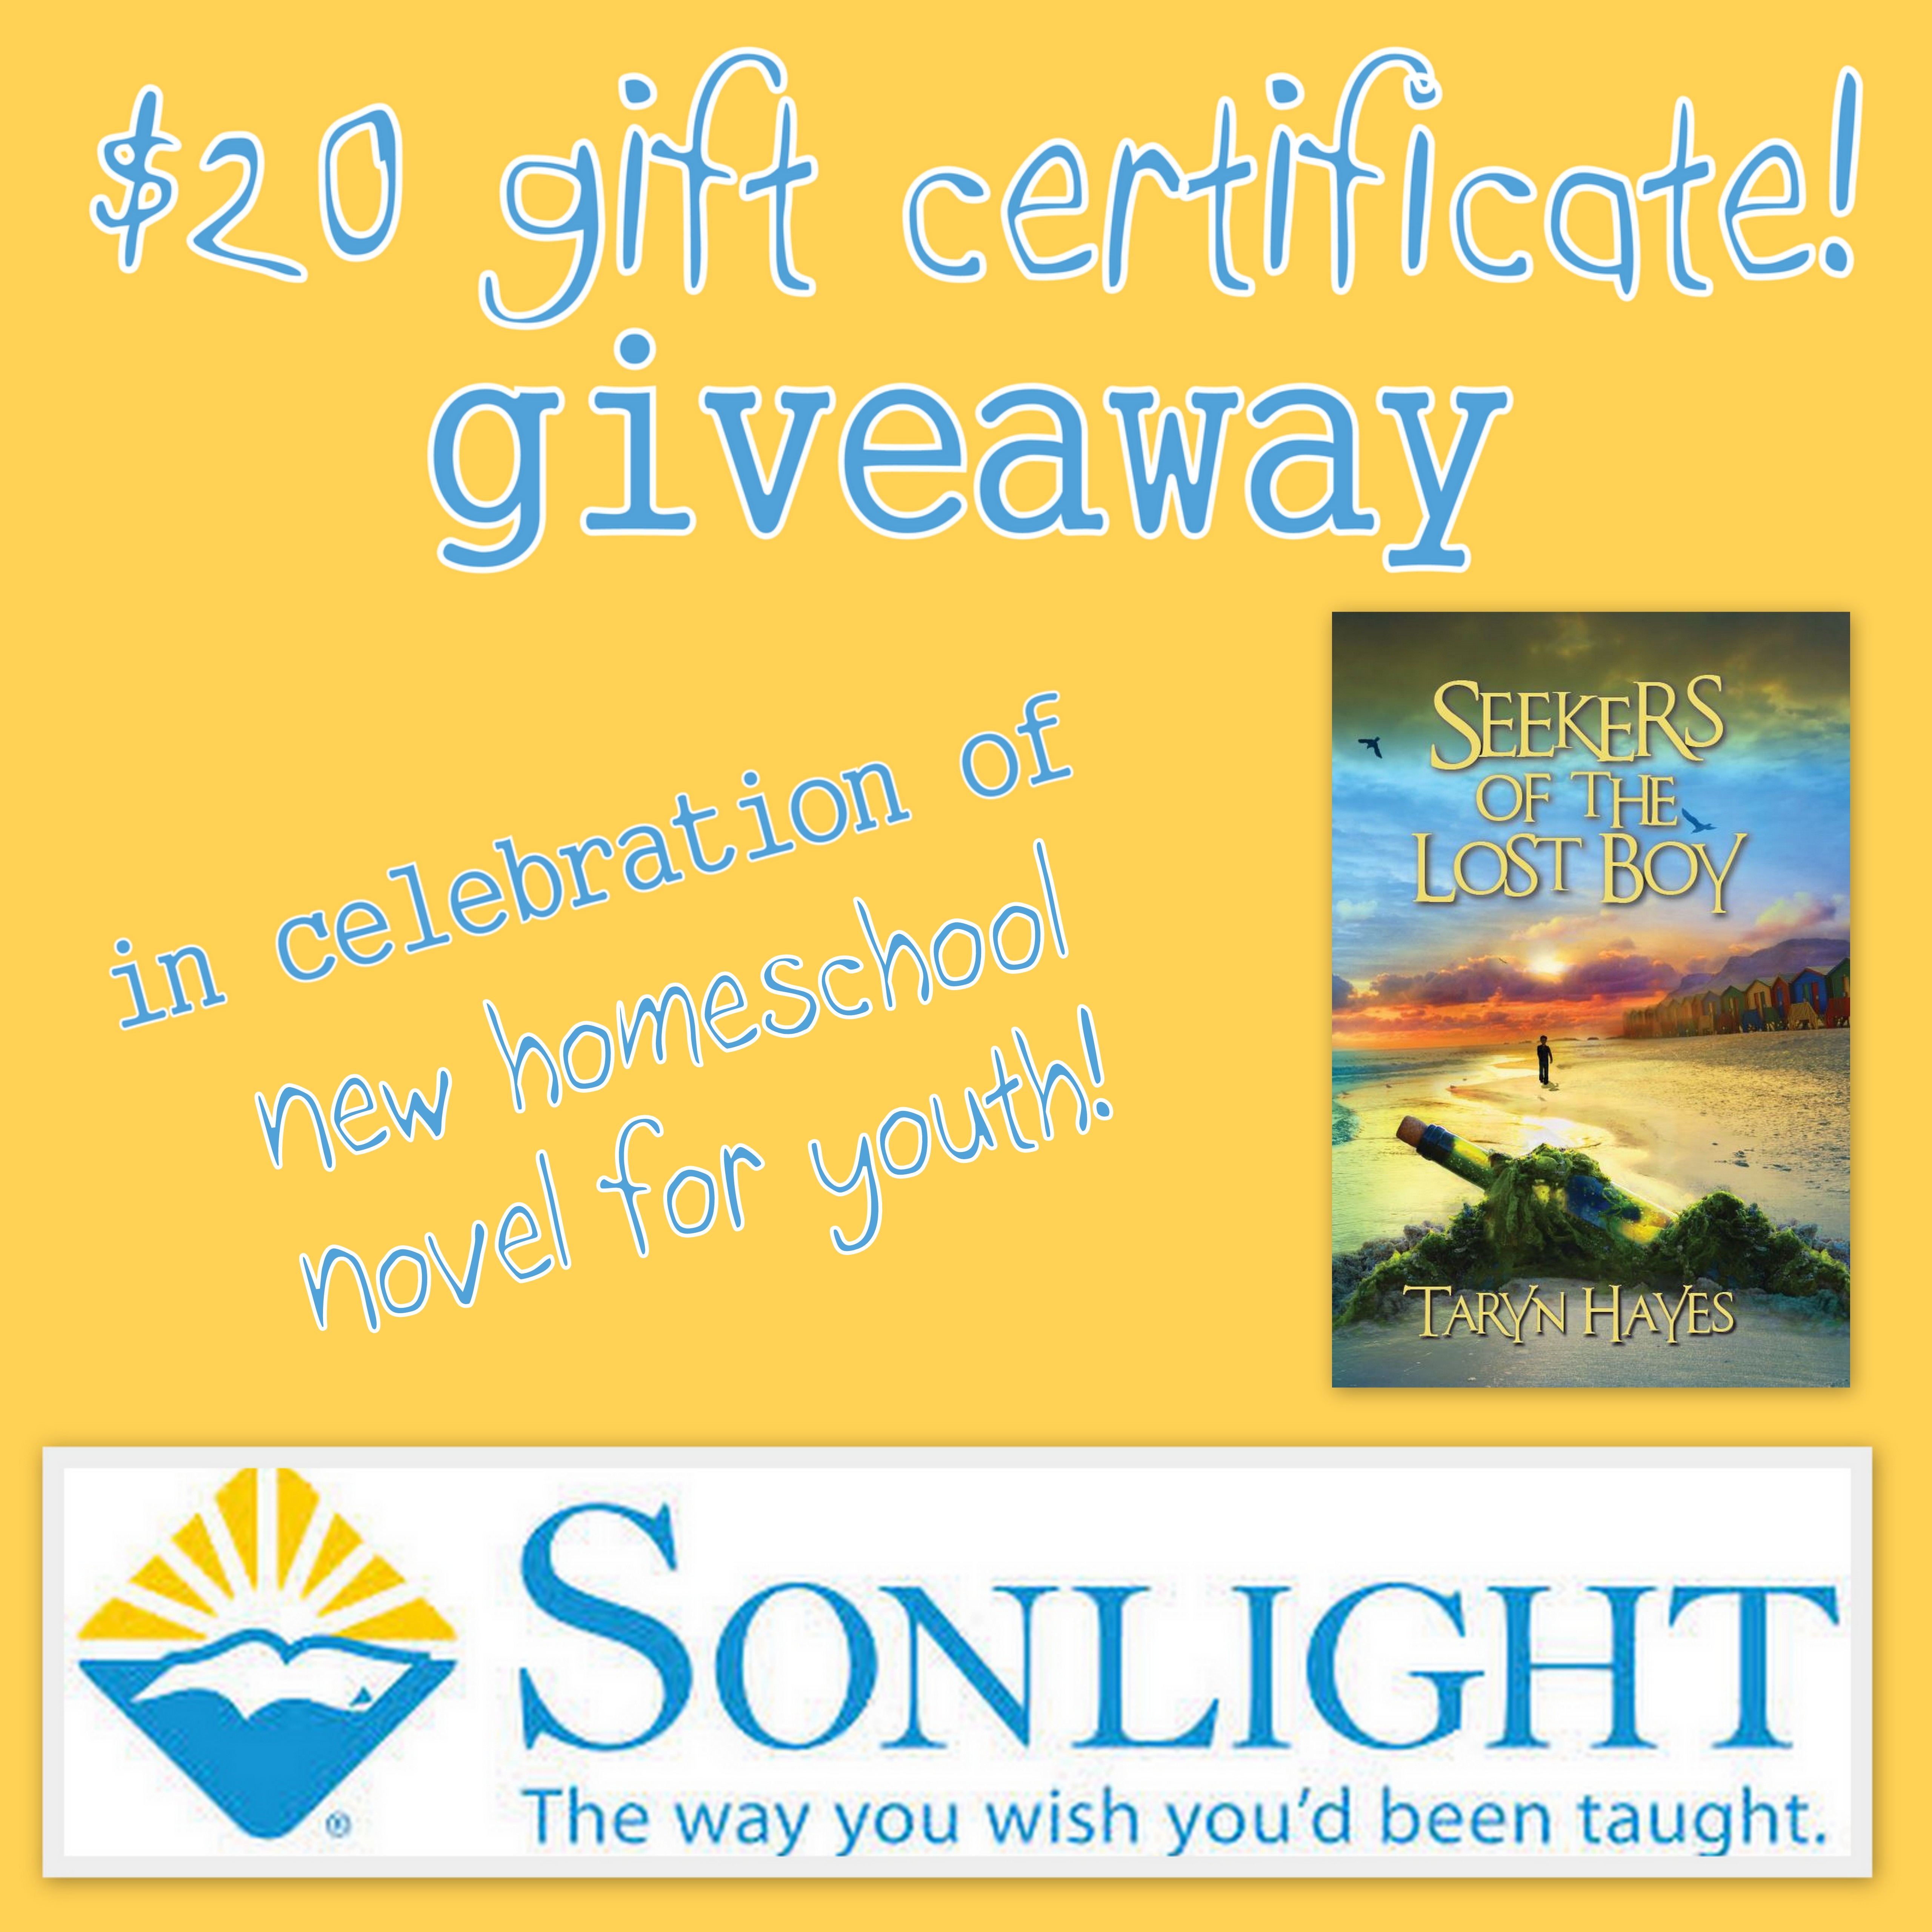 SeekersSonlight giveaway